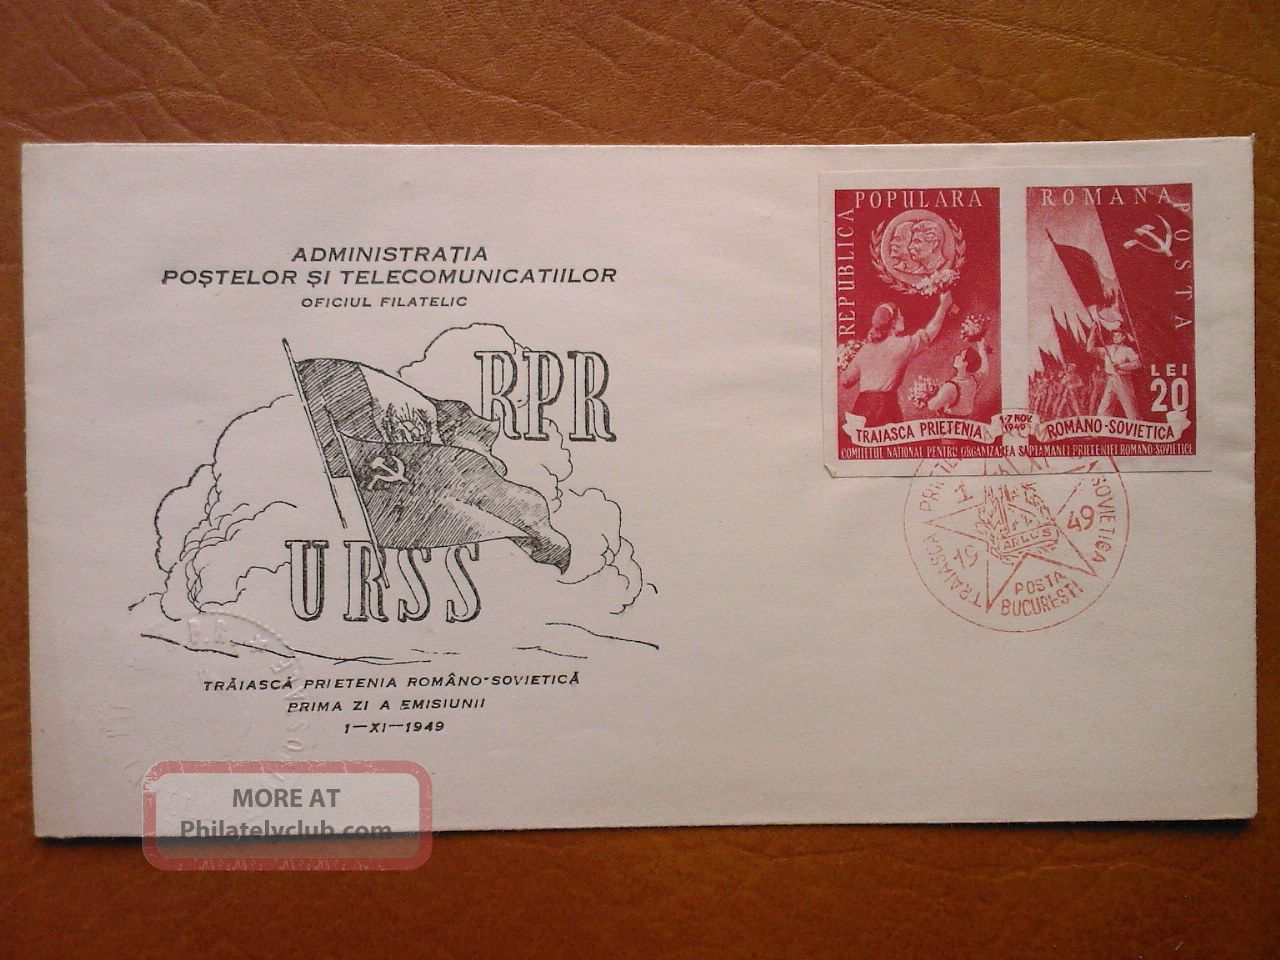 1949 - Prietenia Romano Sovietica Nedantelat - F.  D.  C.  3637 Worldwide photo